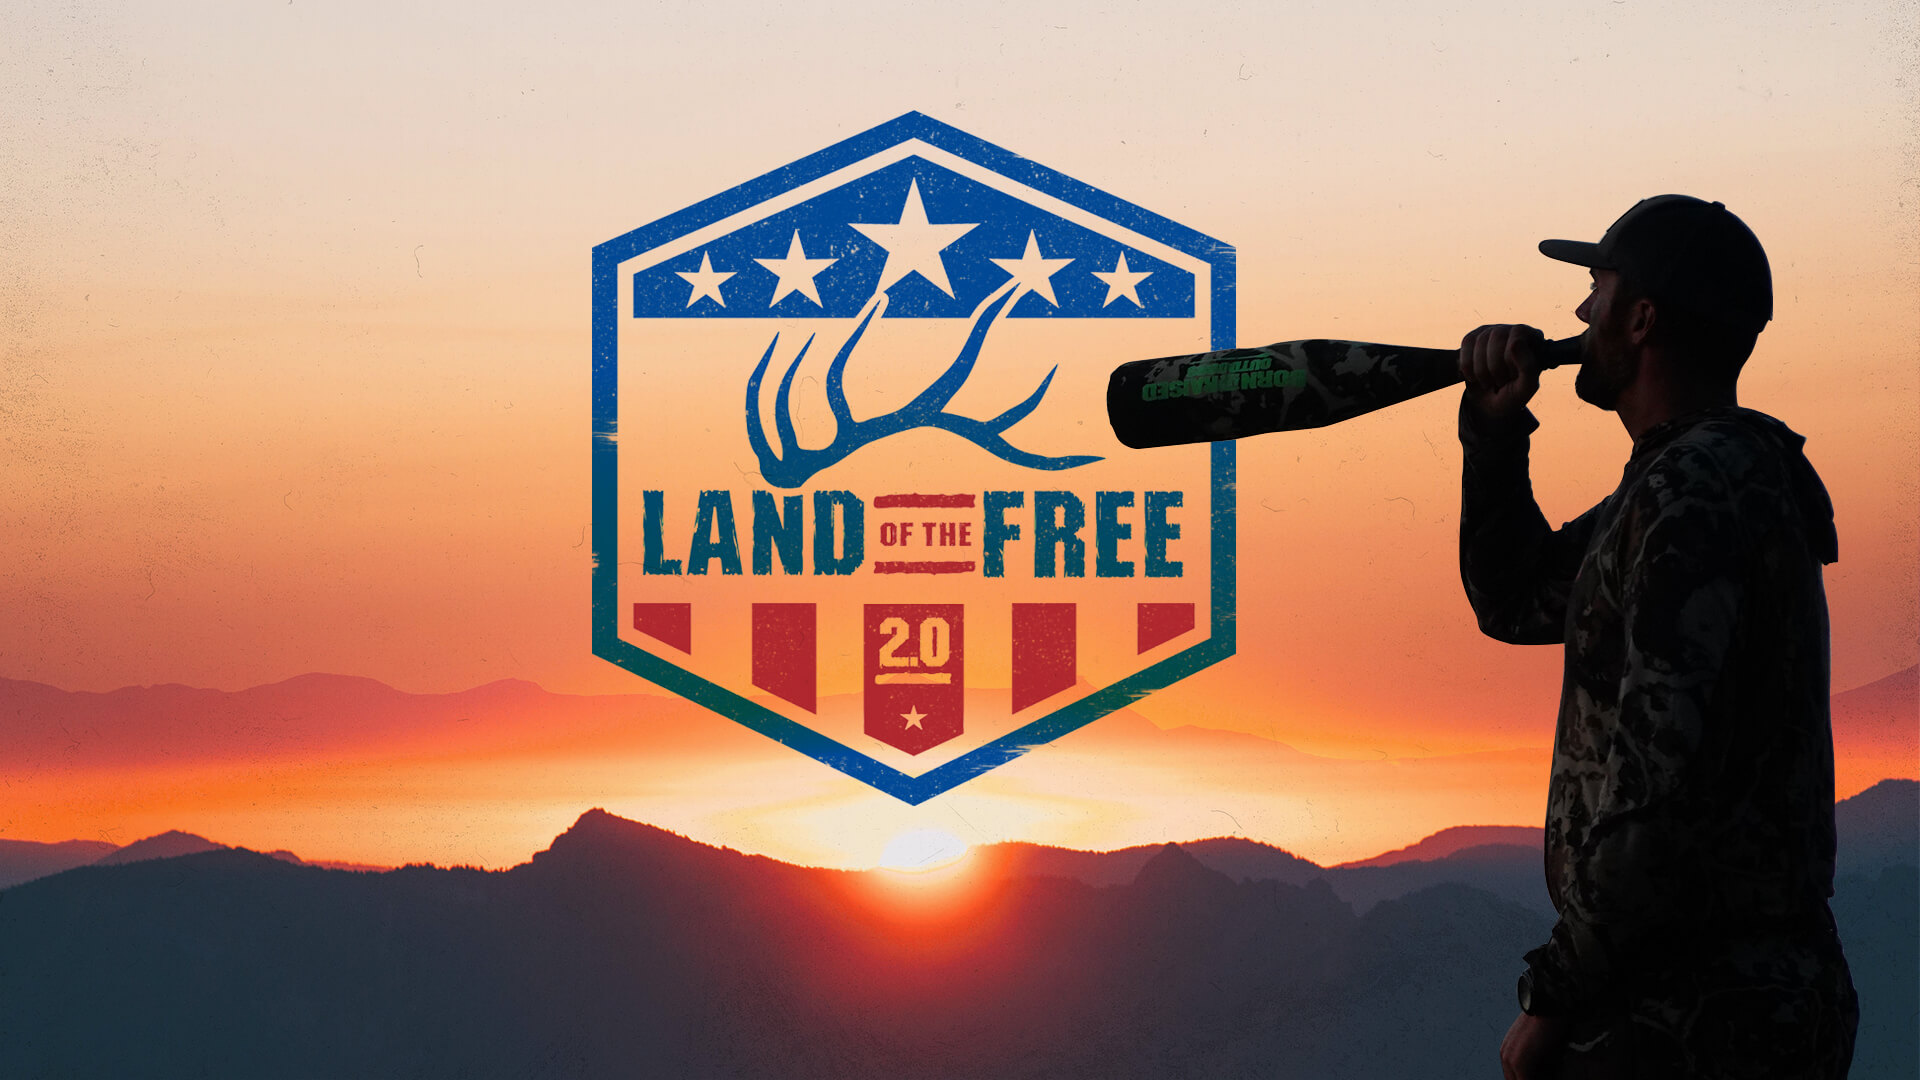 Land of the Free 2.0